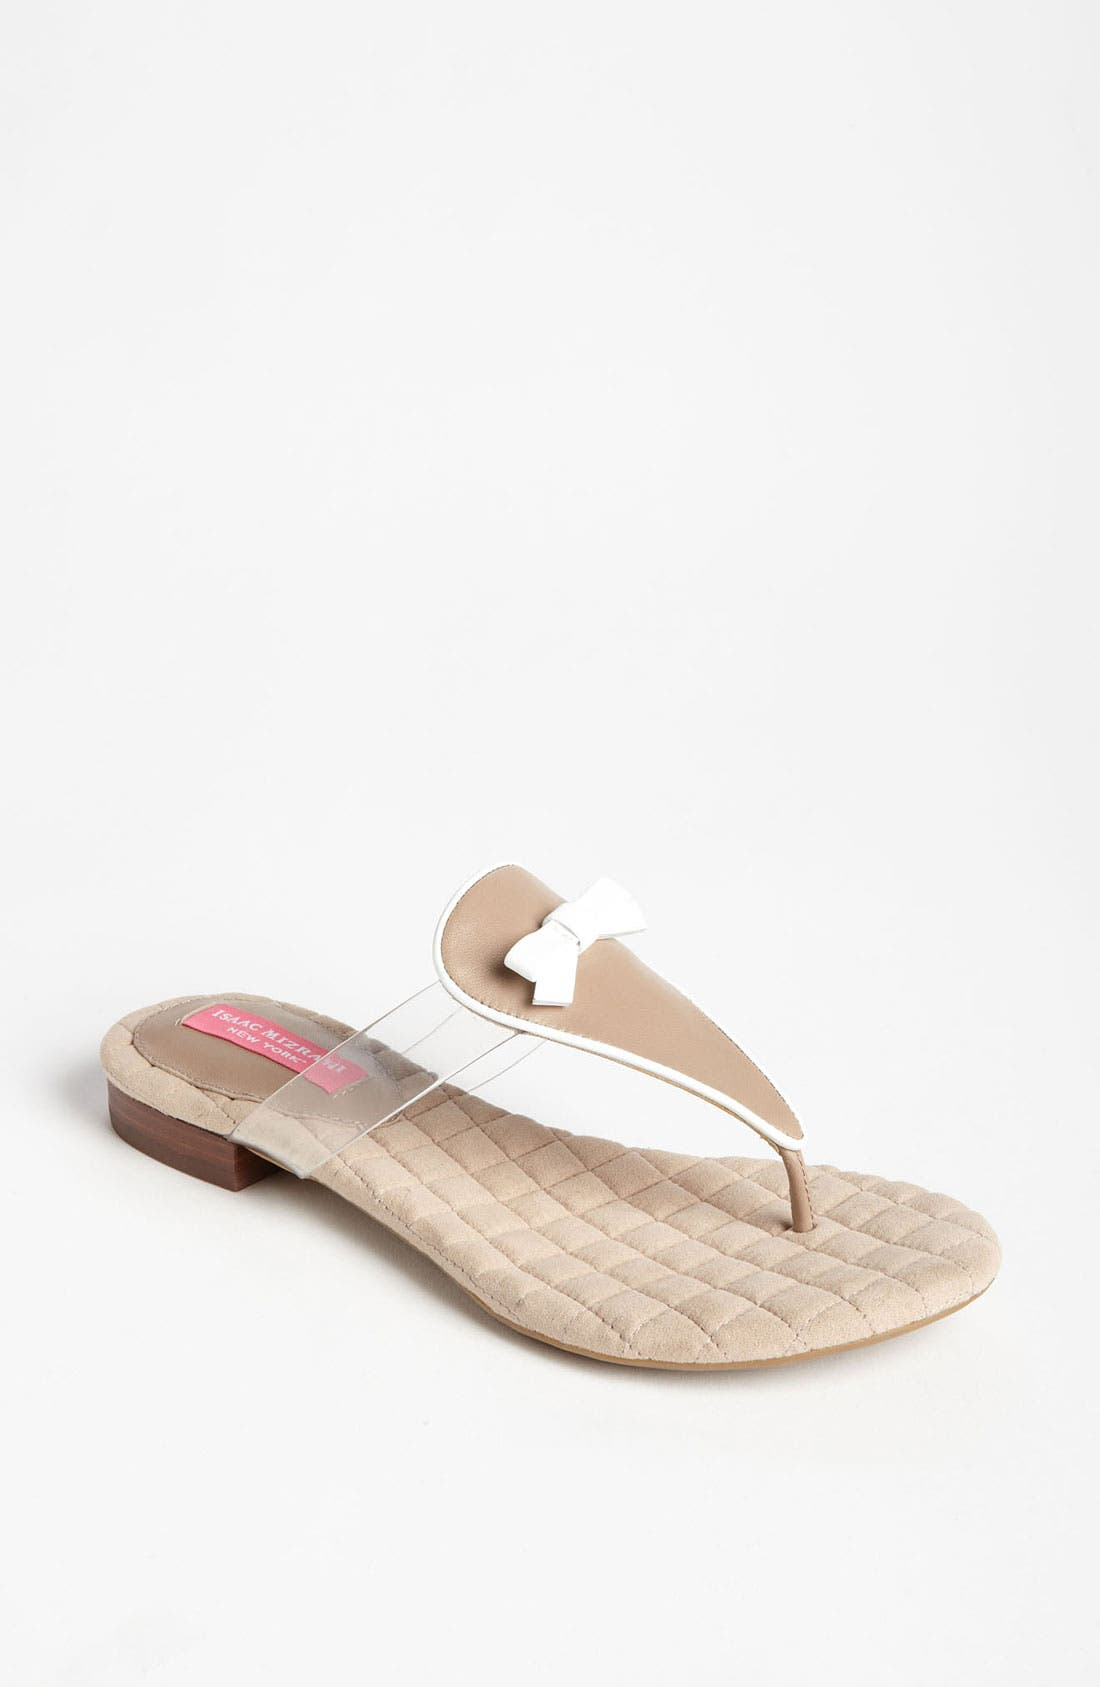 Alternate Image 1 Selected - Isaac Mizrahi New York 'Callie' Sandal